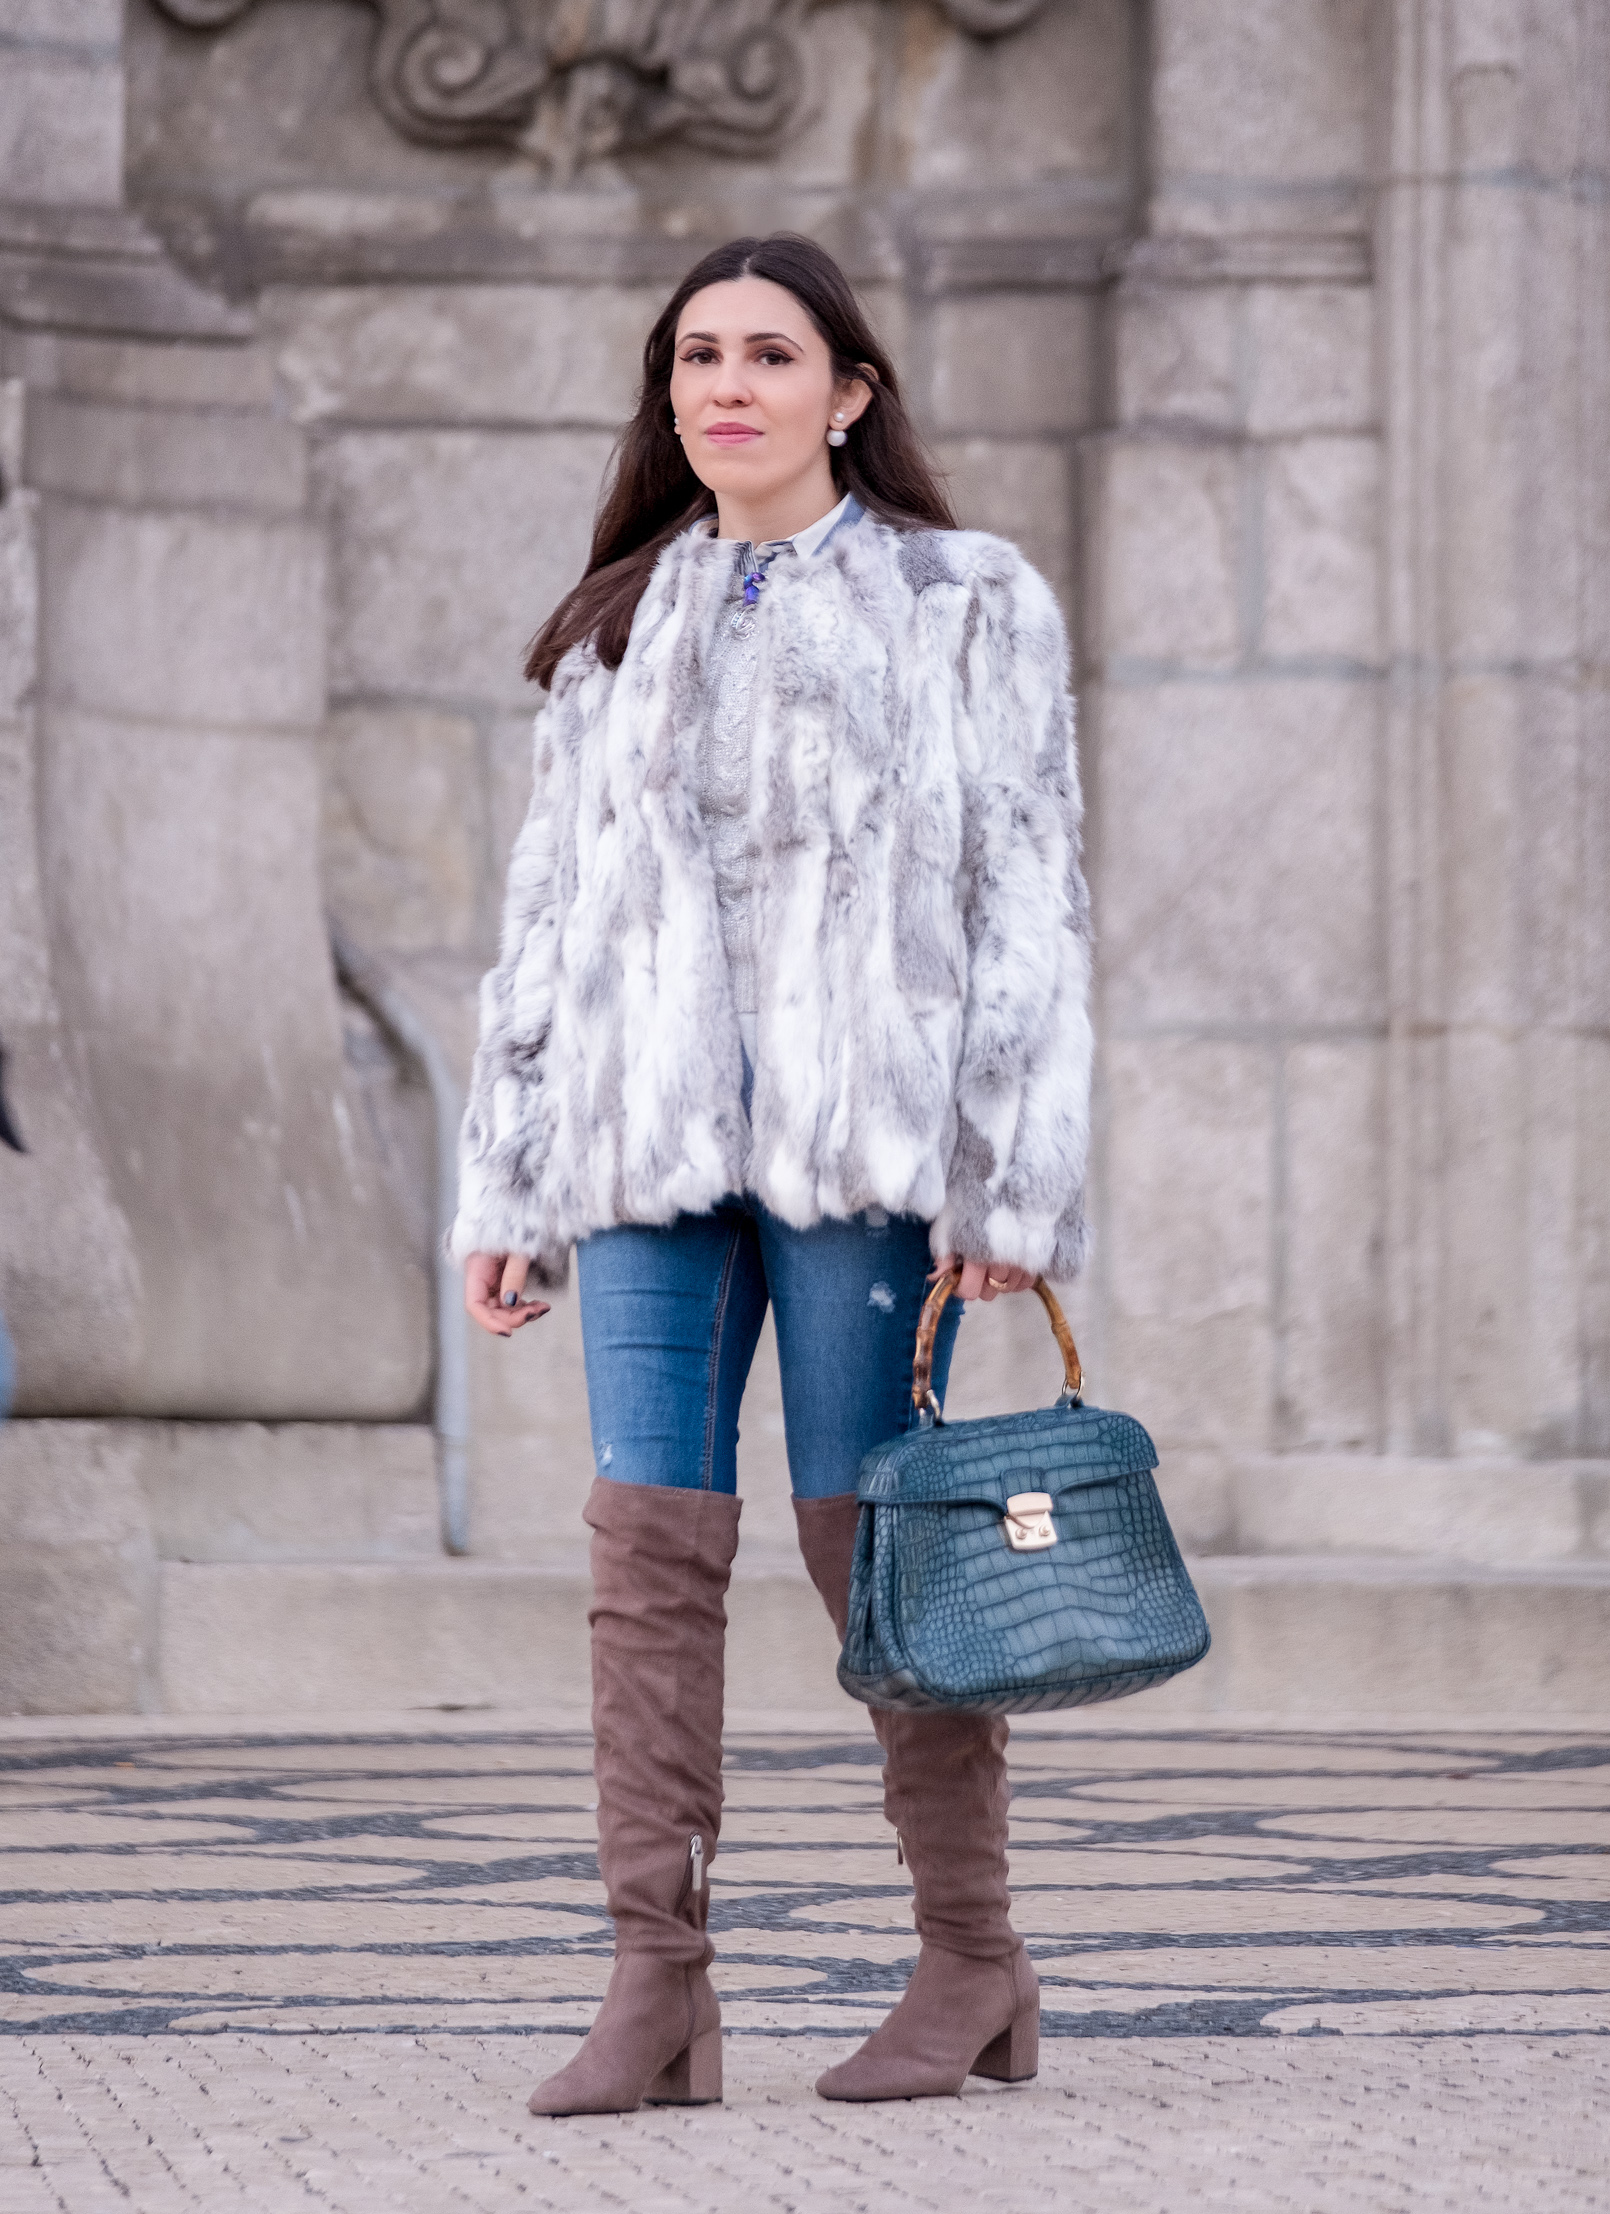 Le Fashionaire fur white gray sfera coat stradivarius jeans over knee gray suede bershka boots bamboo fake leather blue croc lanidor bag 1051 EN fur white gray sfera coat stradivarius jeans over knee gray suede bershka boots bamboo fake leather blue croc lanidor bag 1051 EN